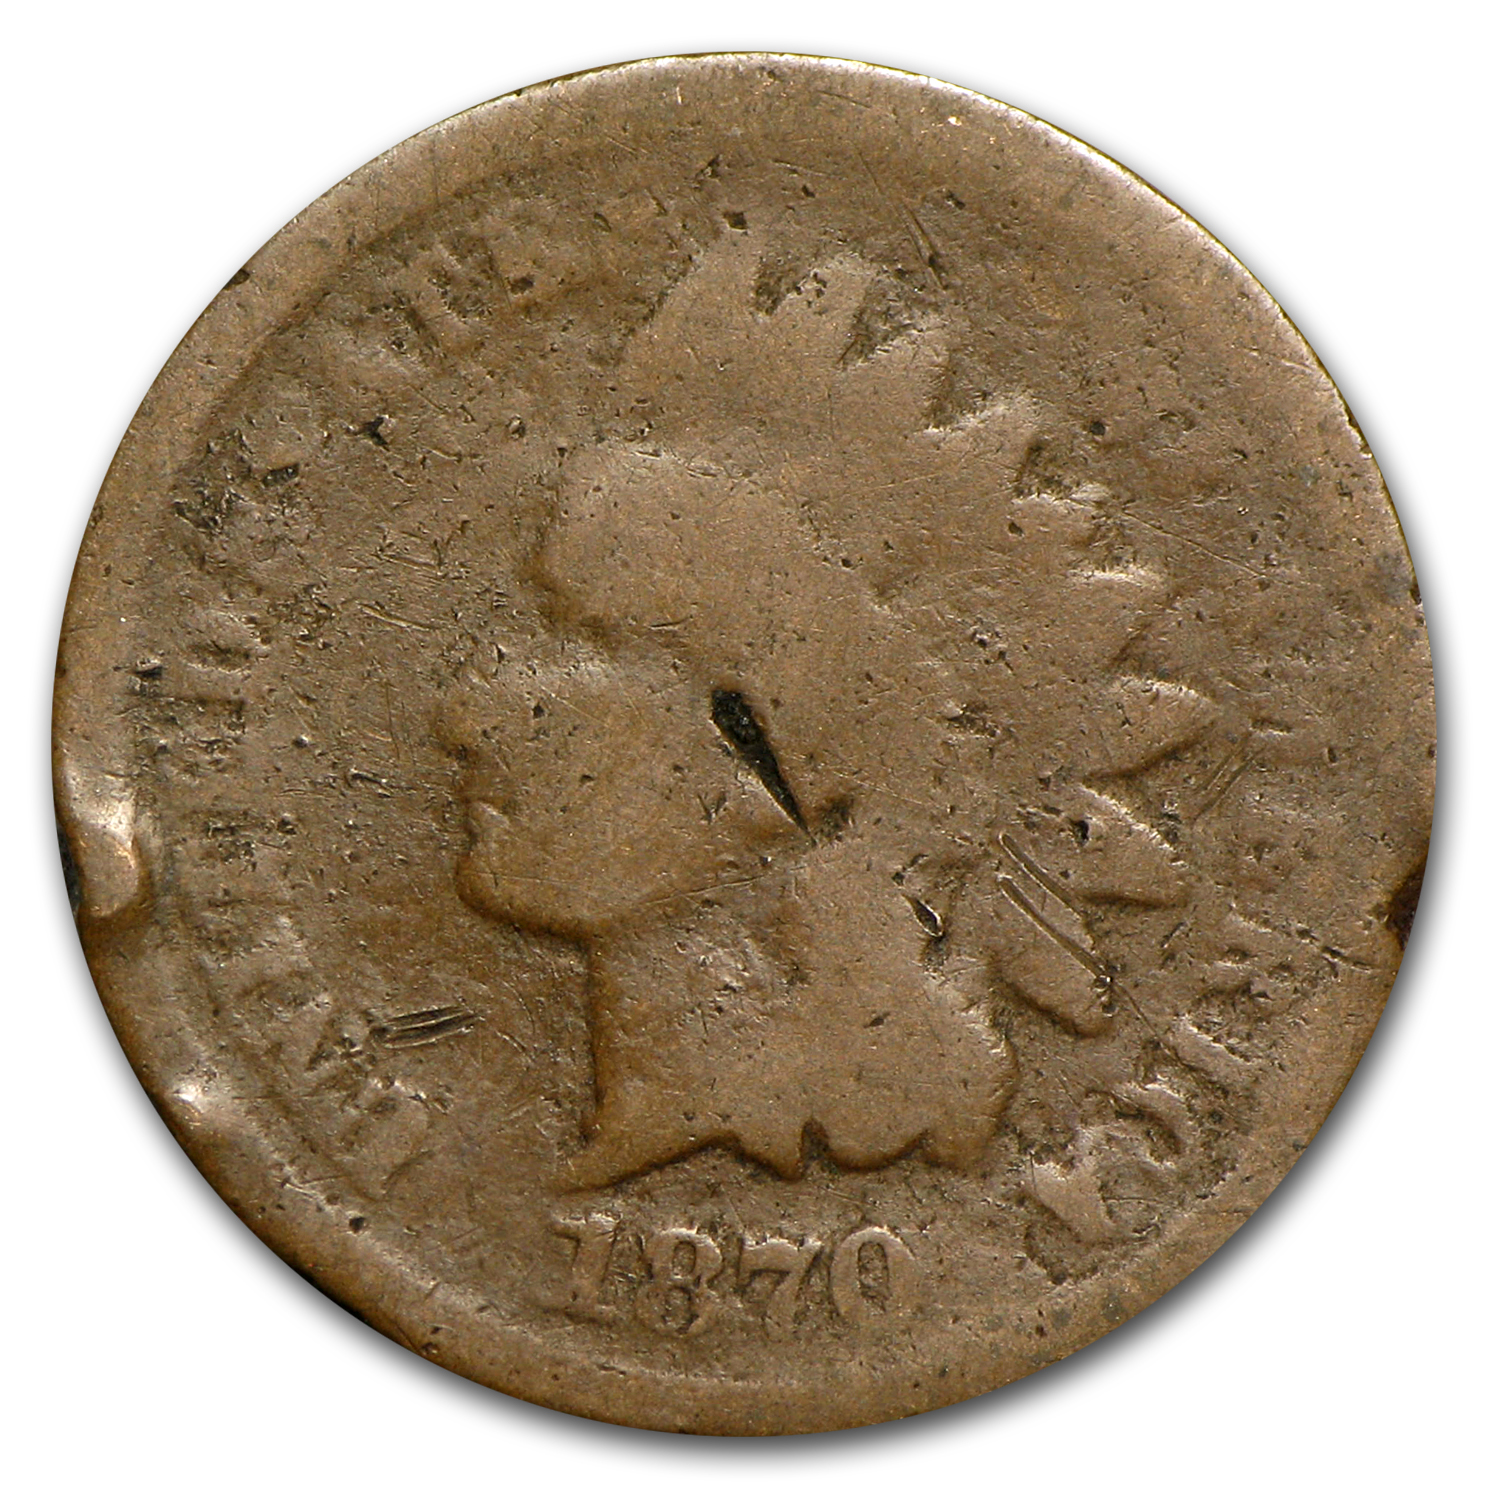 1870 Indian Head Cent Cull